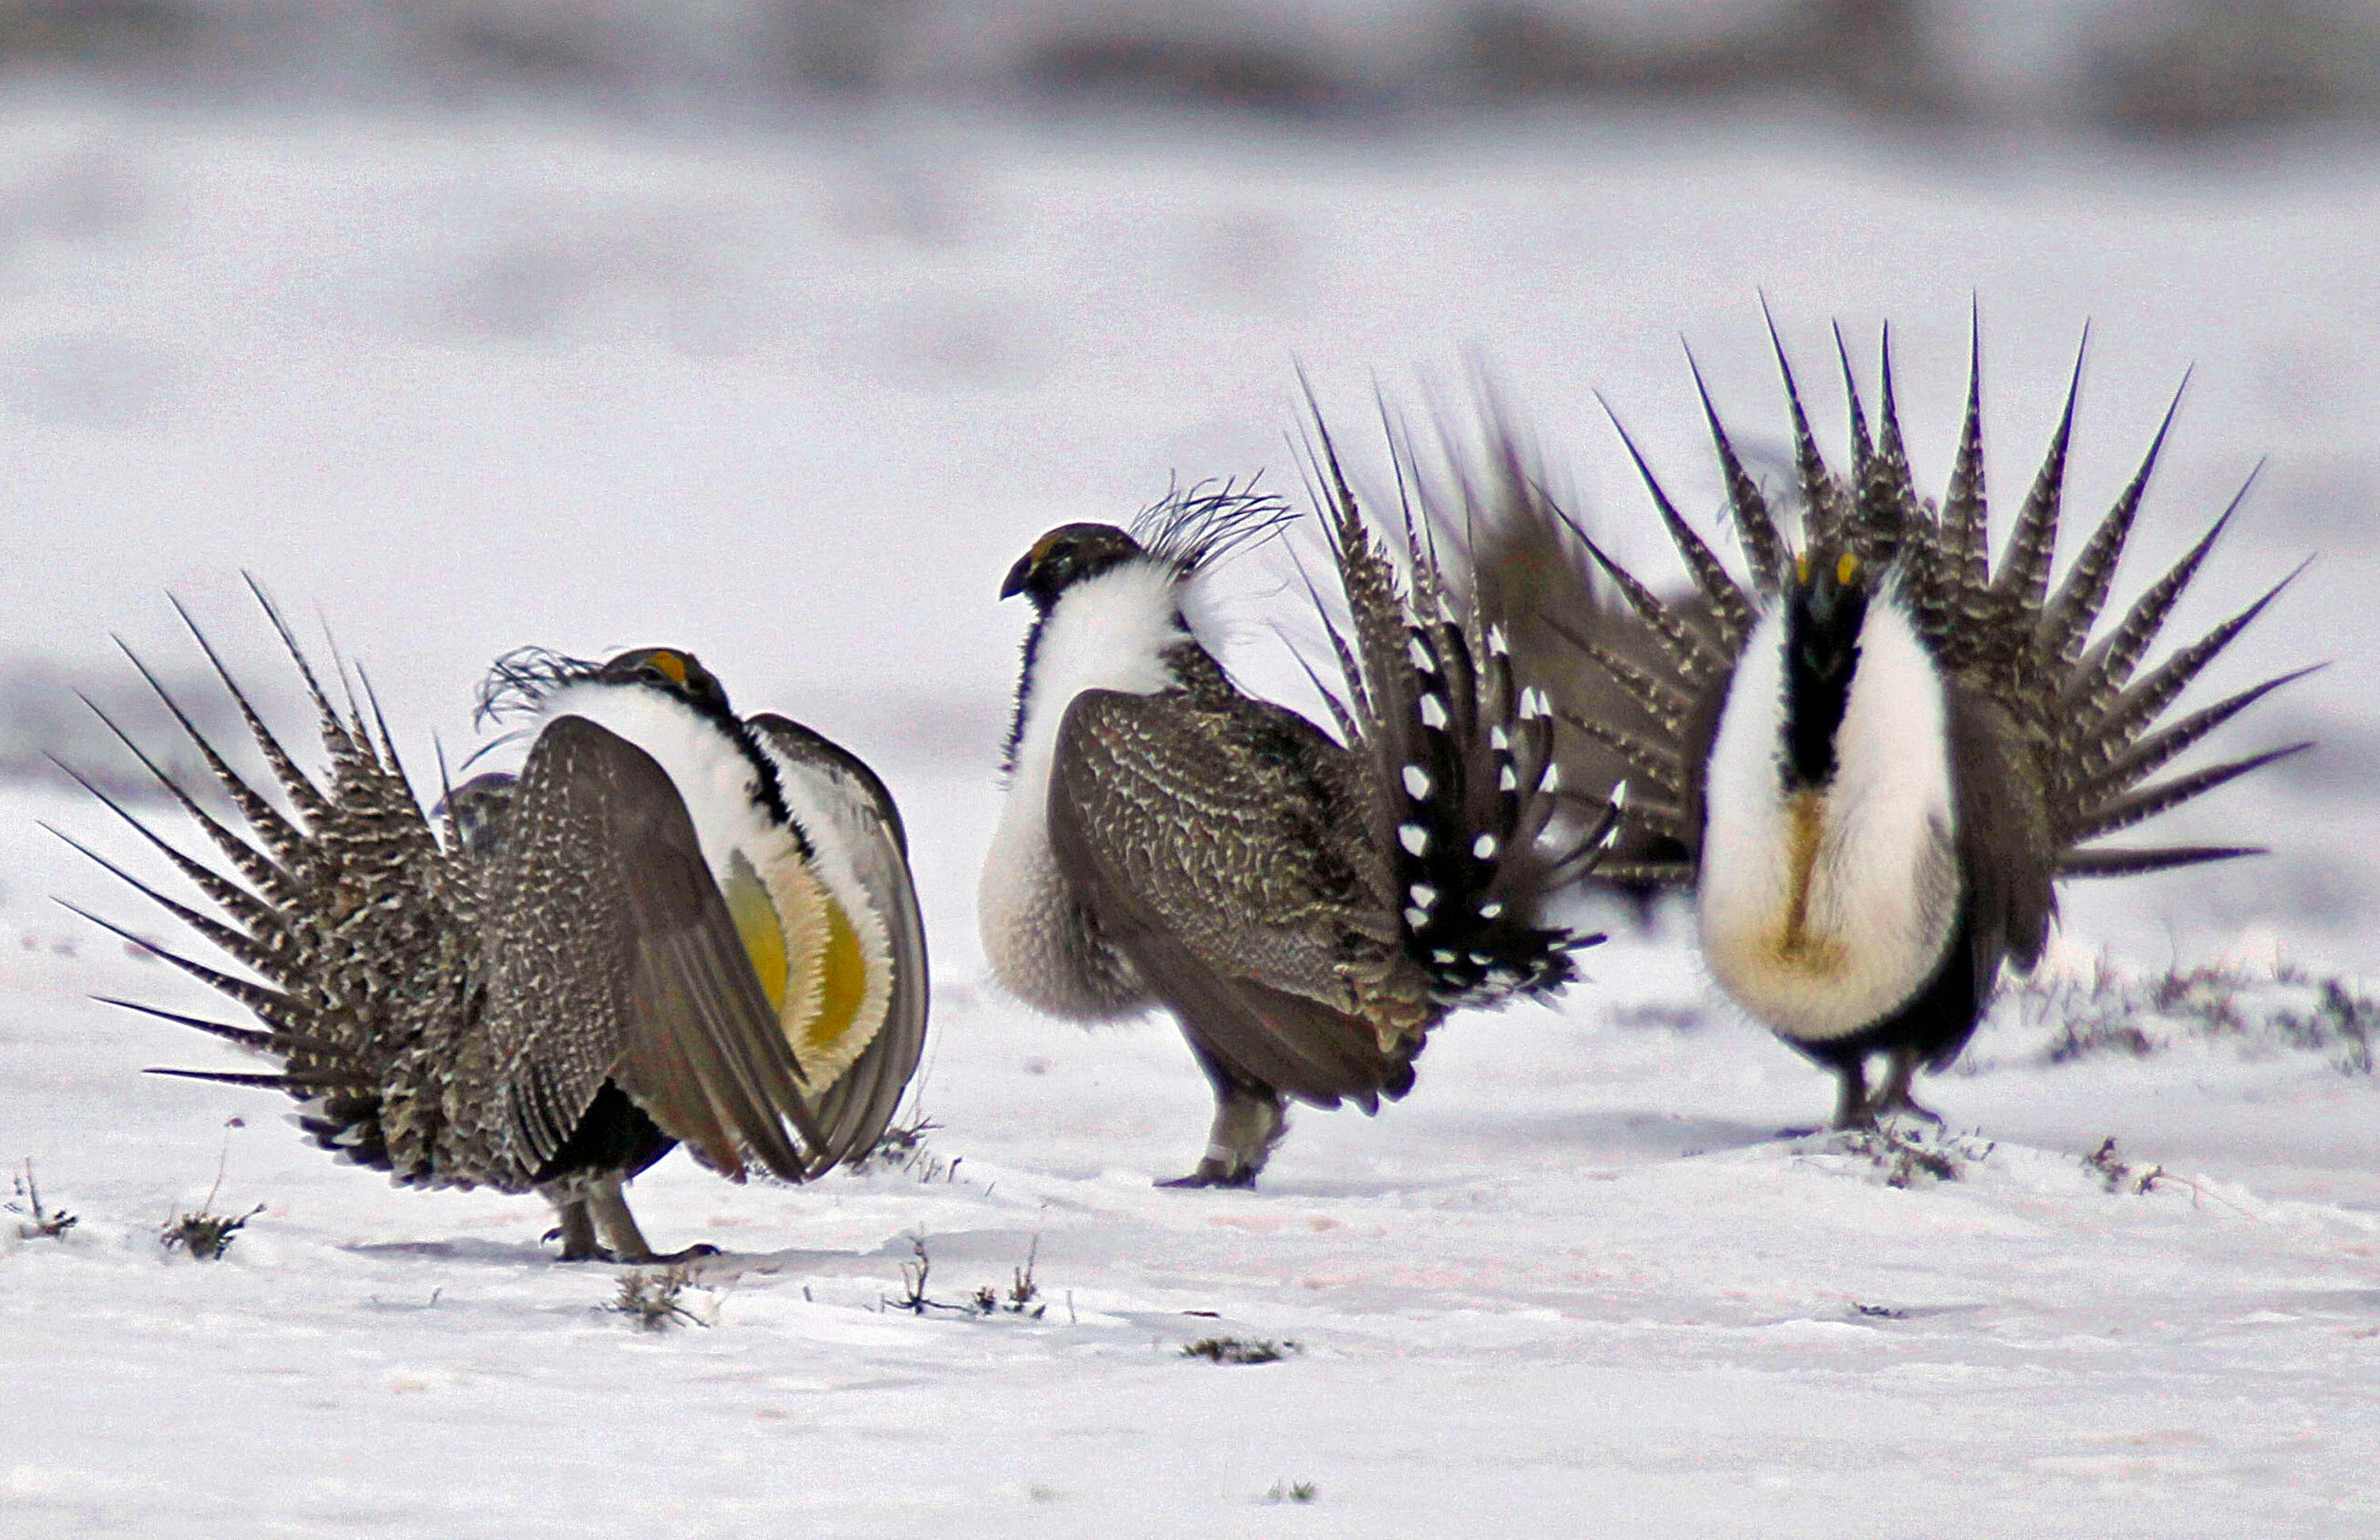 FILE - In this April 20, 2013 file photo, male greater sage grouse perform mating rituals for a female grouse, not pictured, on a lake outside Walden, Colo. More than 50,000 square miles of Bureau of Land Management land in the West has been identified as priority habitat for the birds. Western lawmakers are arguing that BLM headquarters should be moved from Washington, D.C., to the West because of its influence there. (AP Photo/David Zalubowski, File)